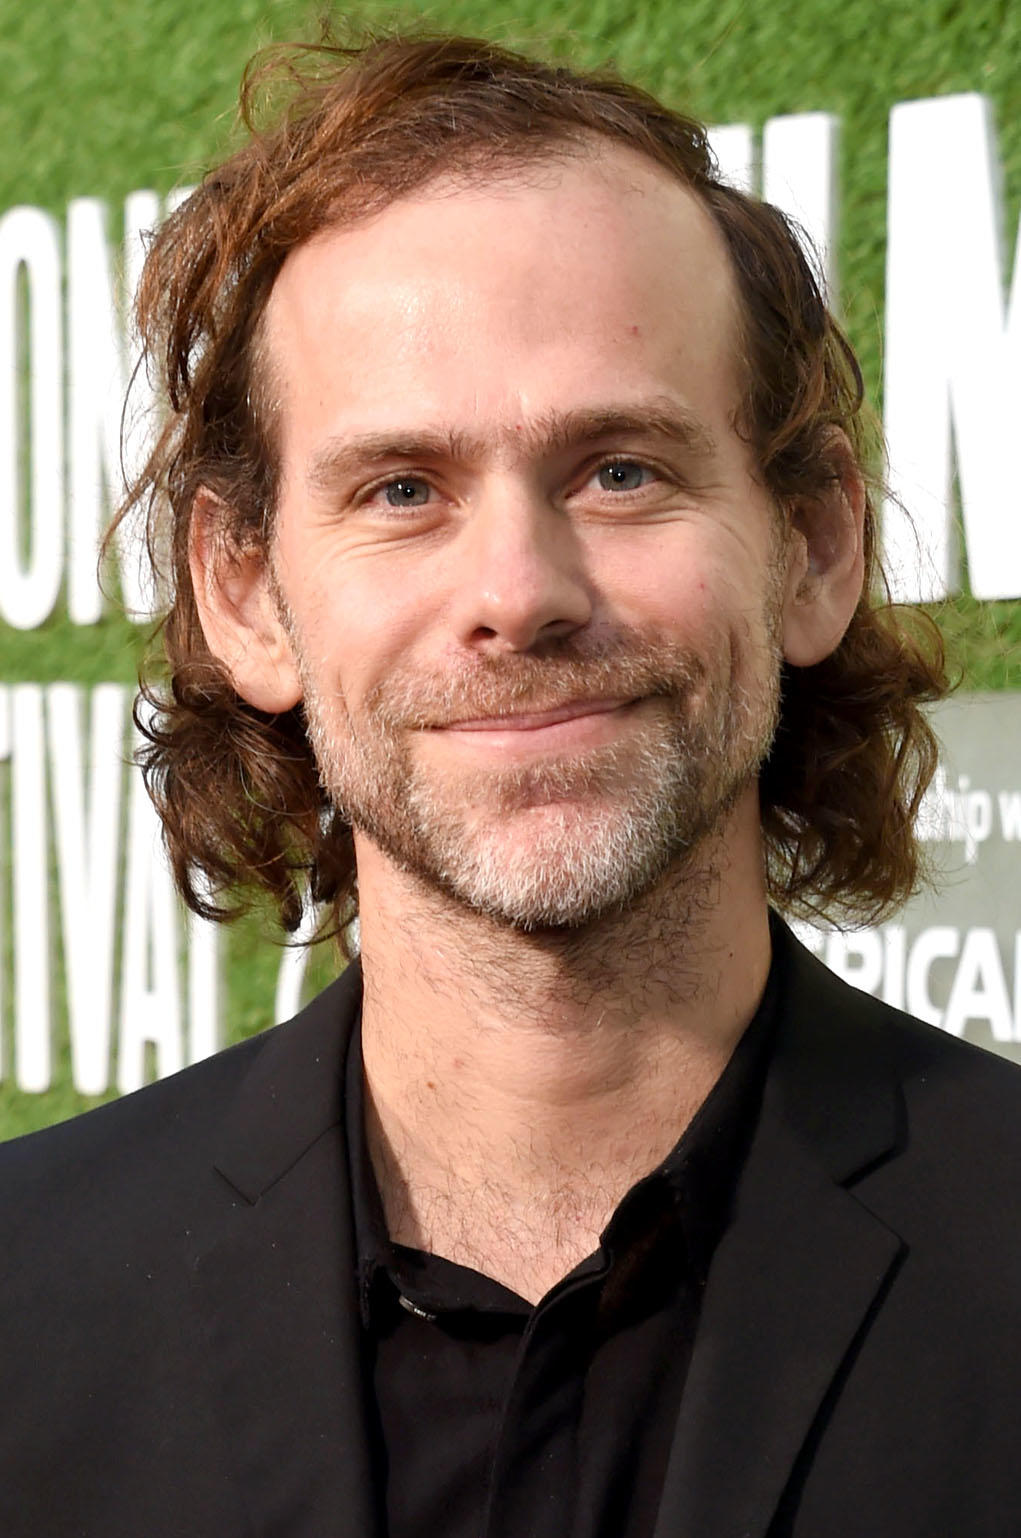 Bryce Dessner at the international premiere for